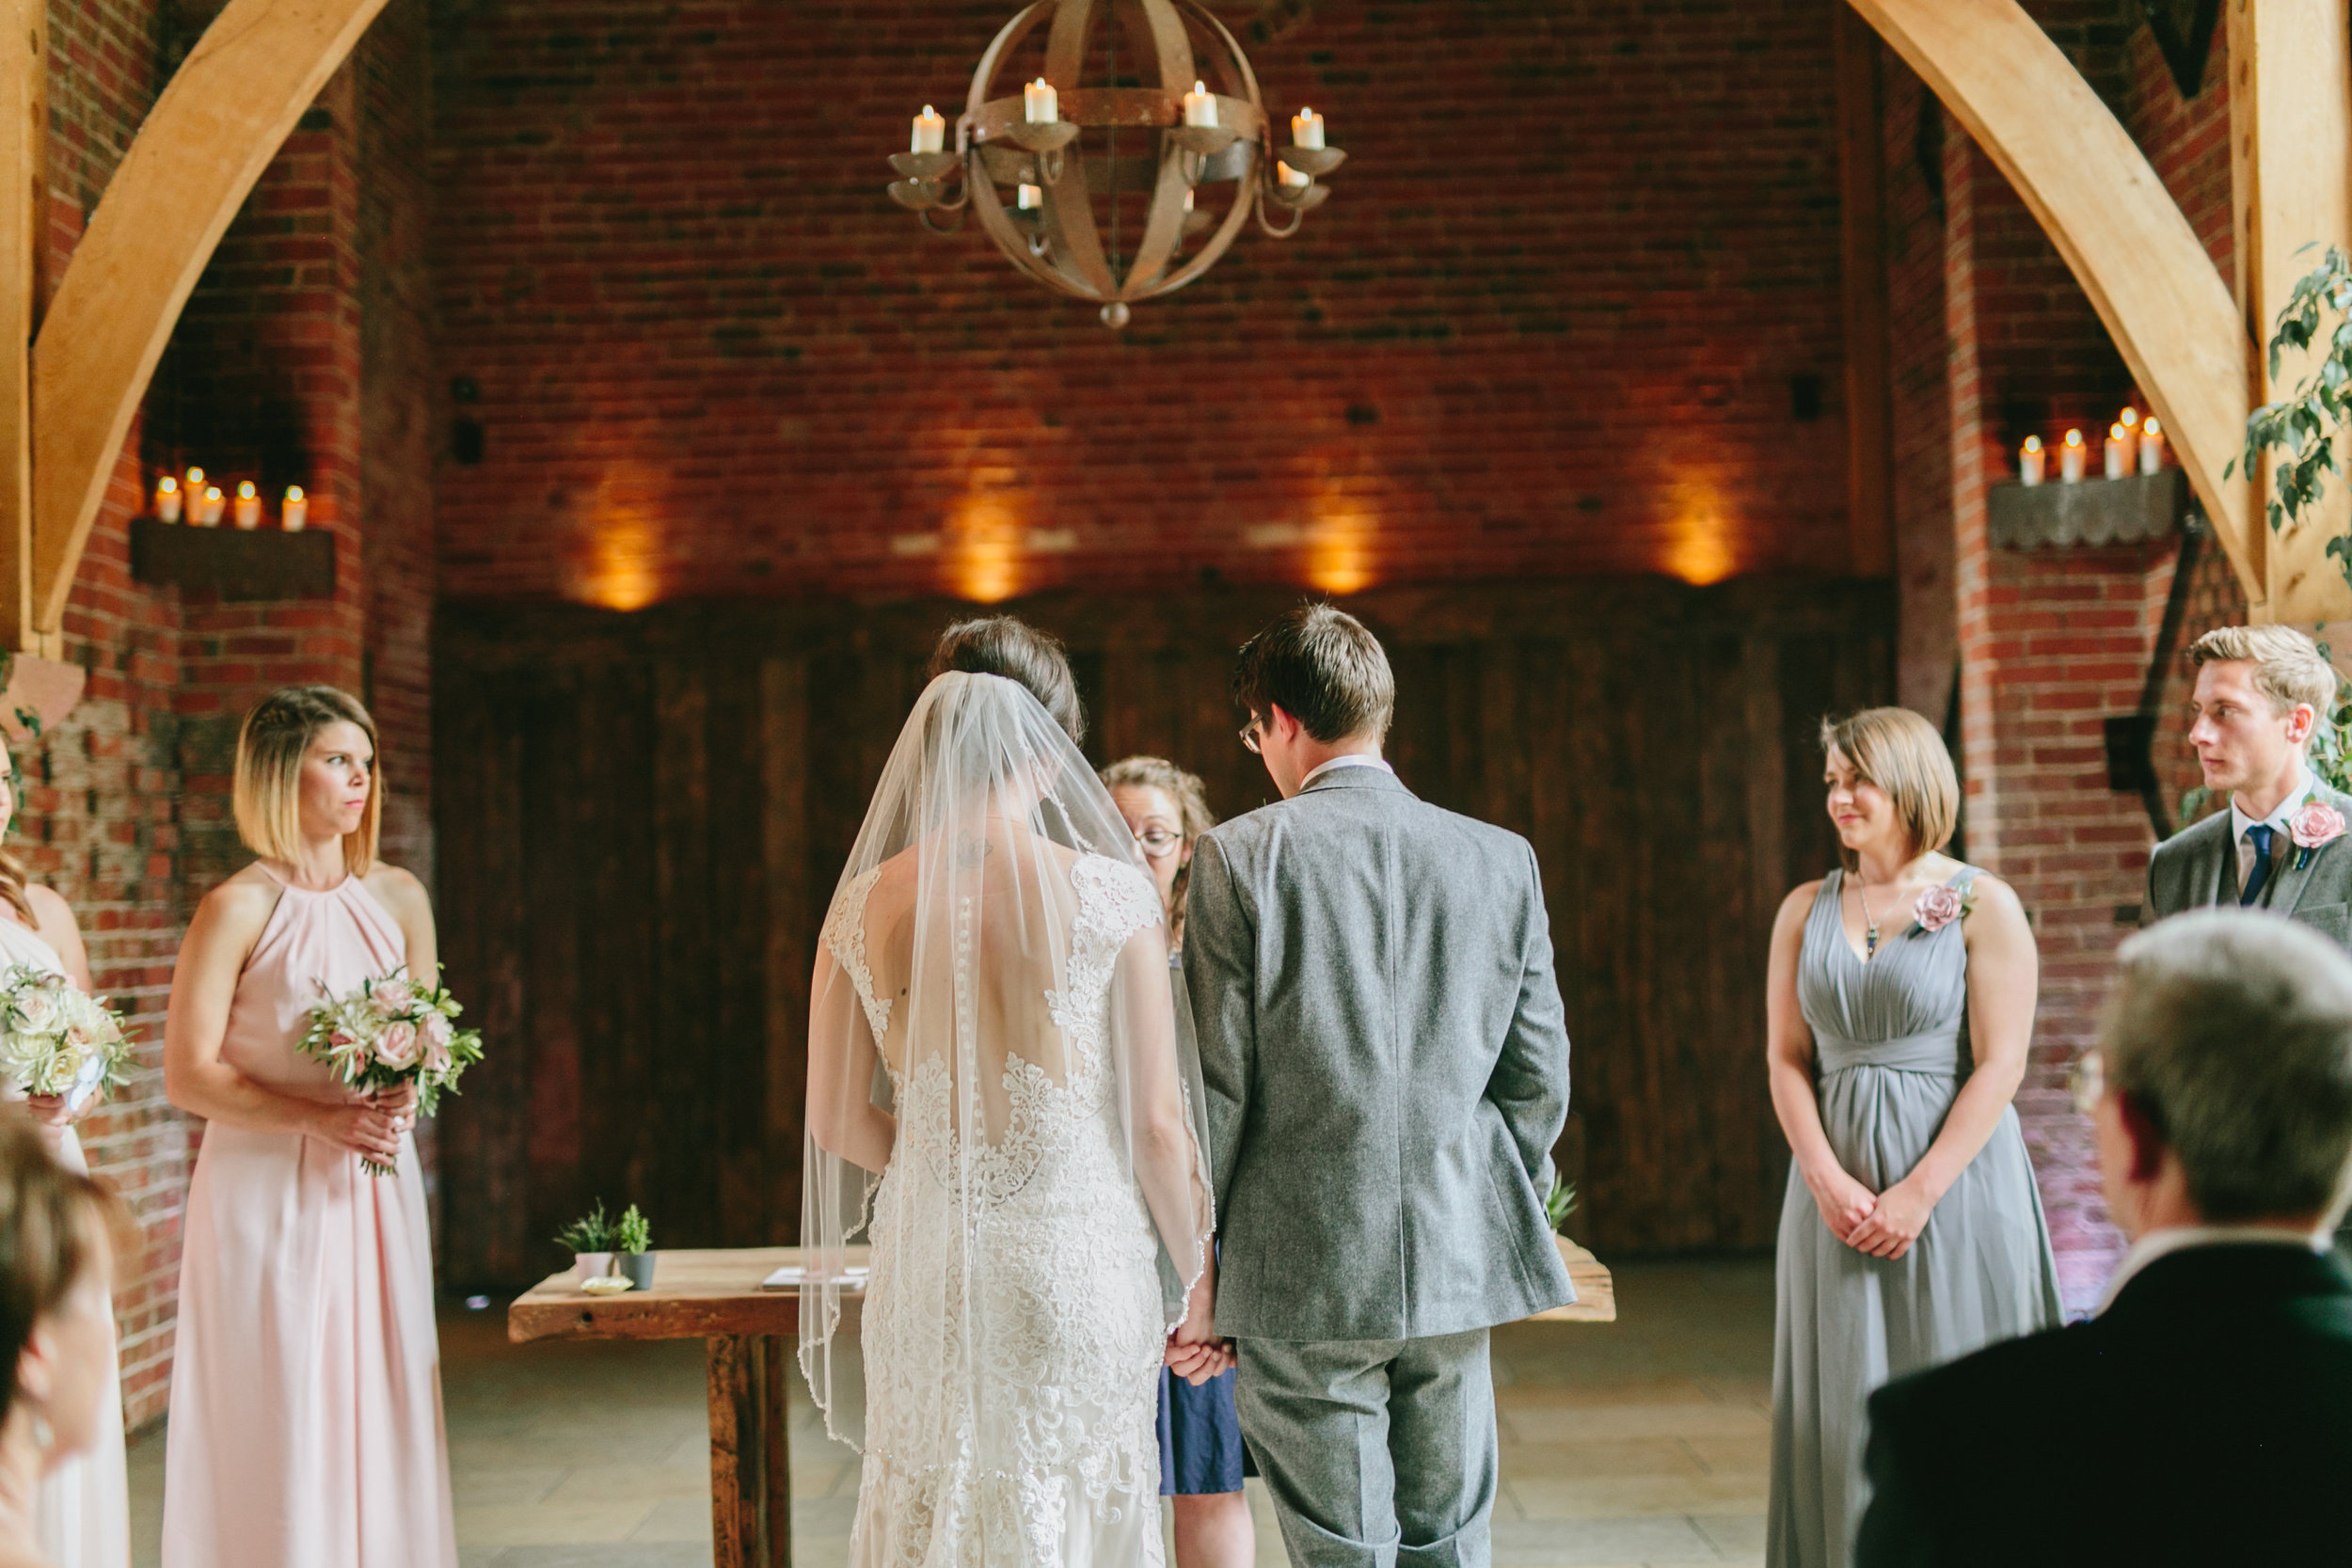 4 Things I Would Do Differently If I Planned Another Wedding